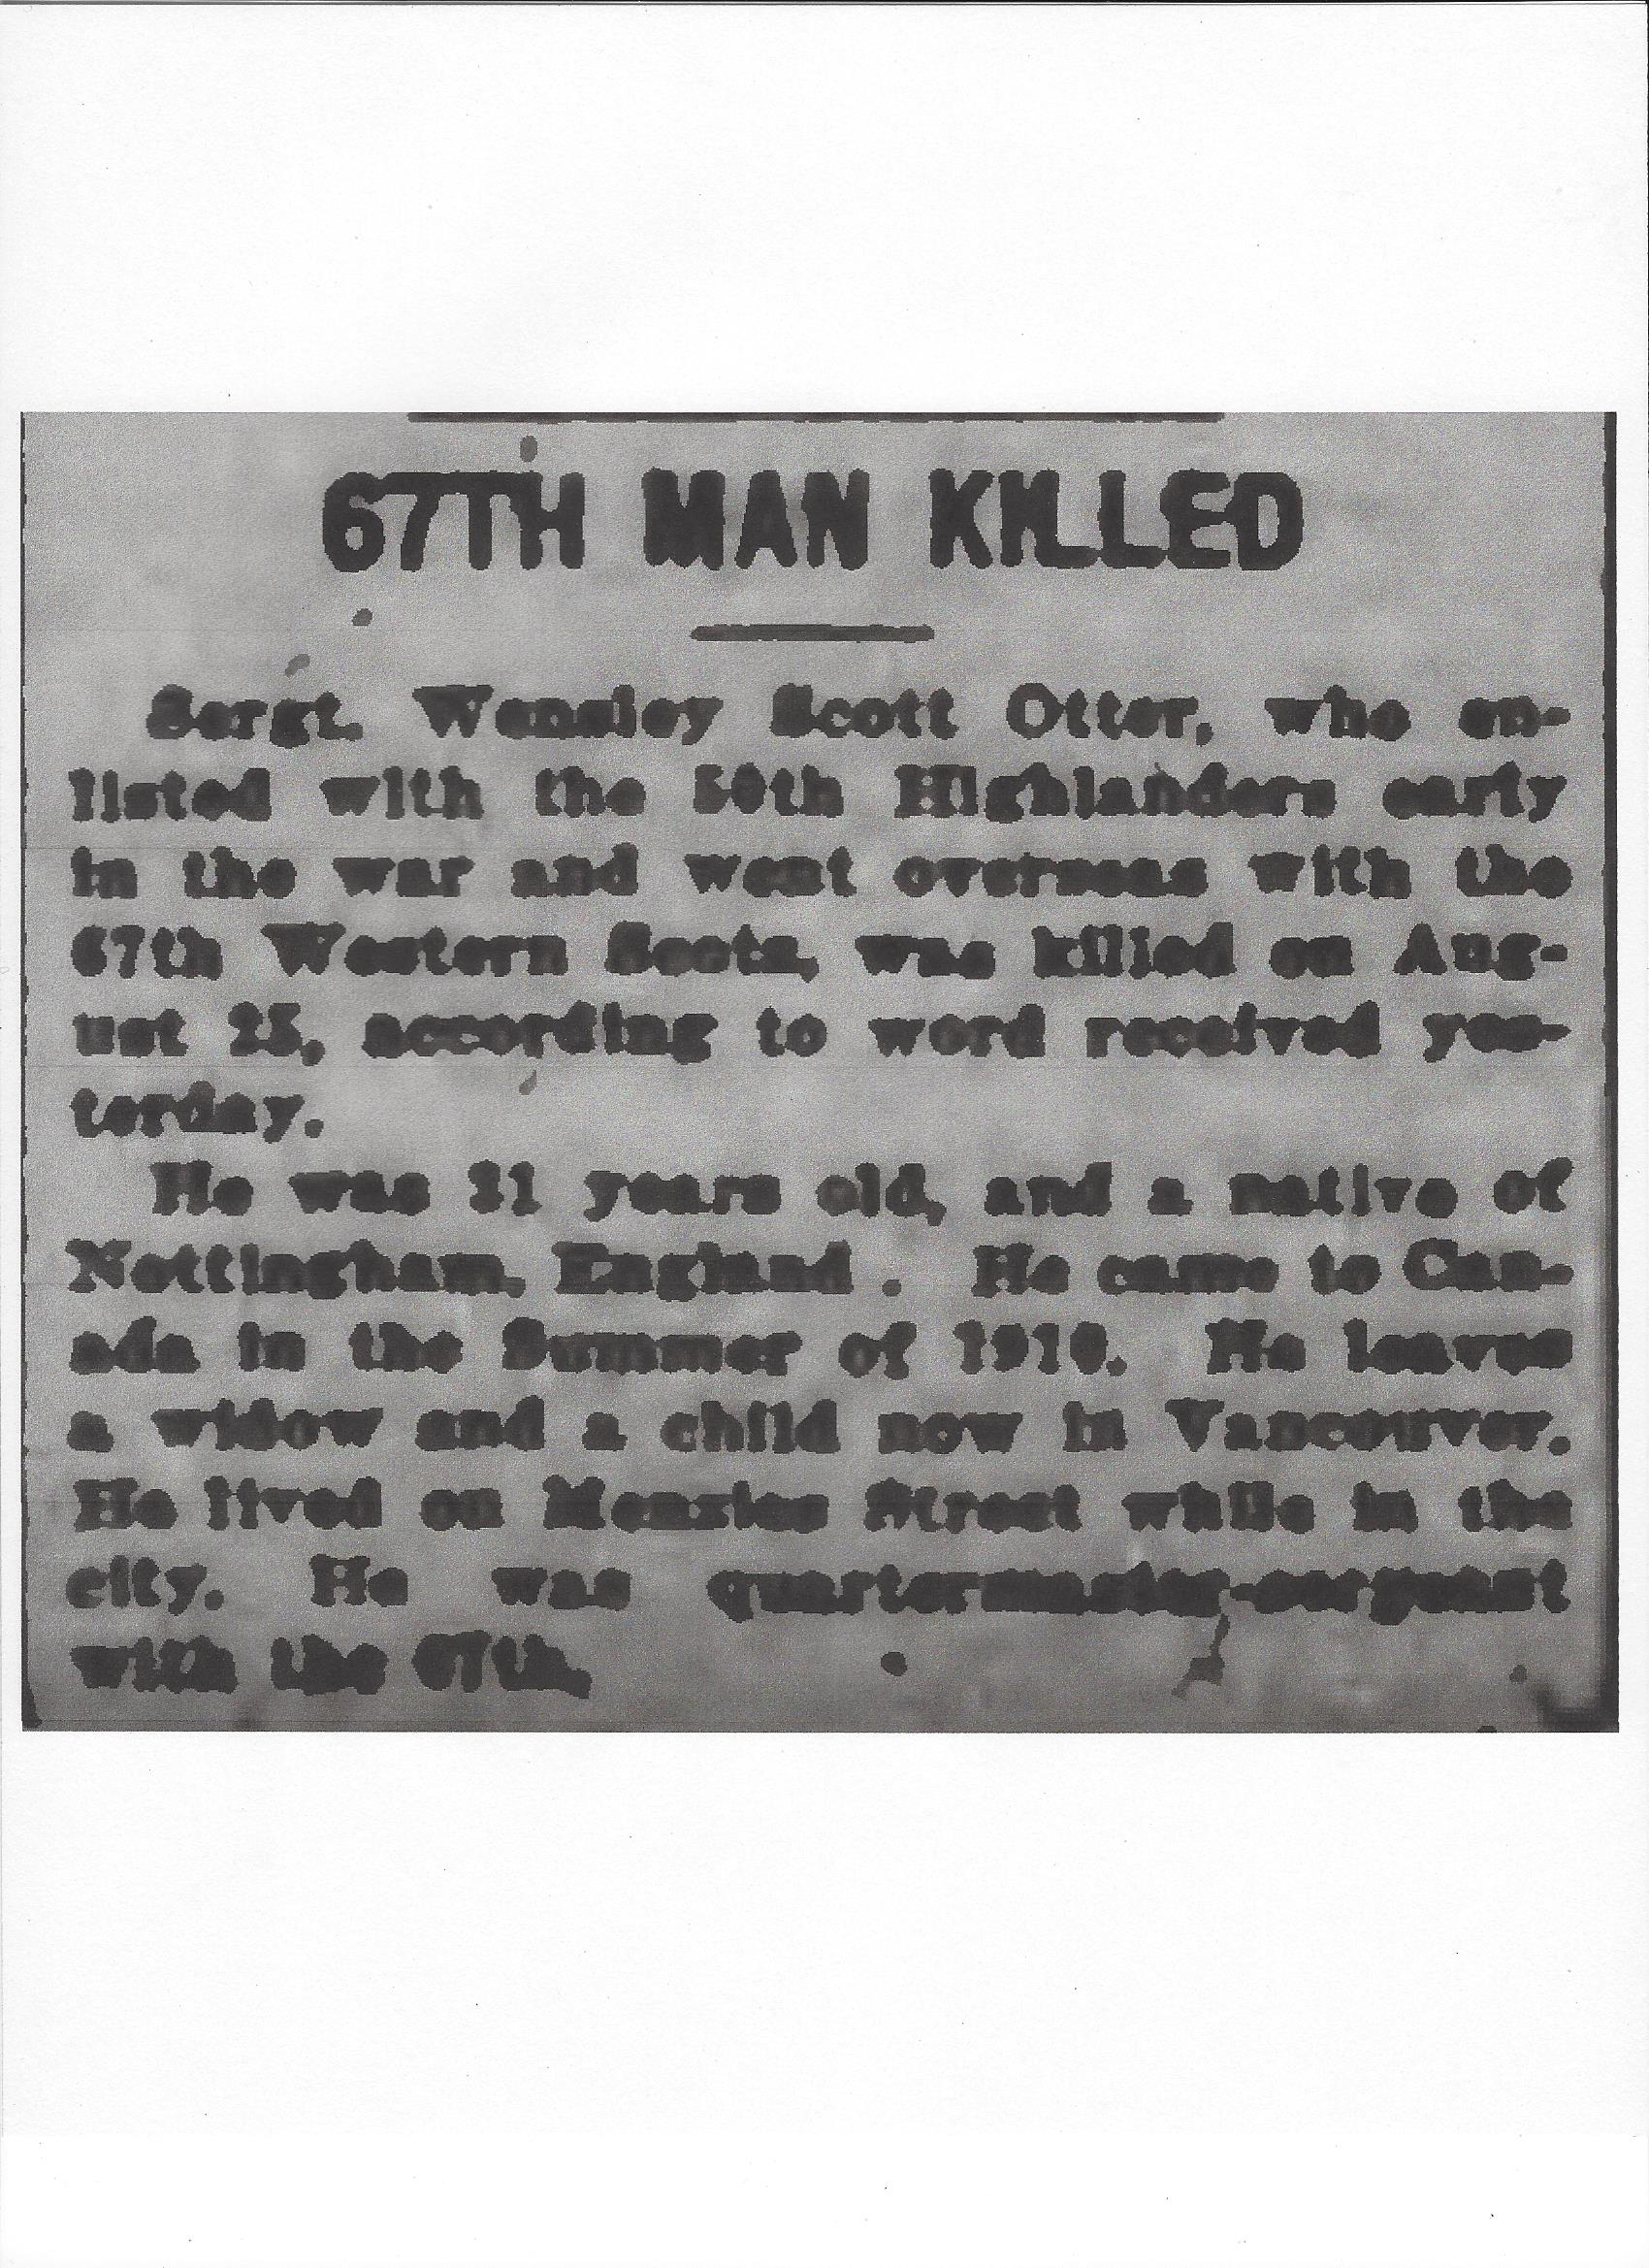 Newspaper clipping– From the Daily Colonist of September 14, 1917. Image taken from web address of http://archive.org/stream/dailycolonist59y239uvic#page/n0/mode/1up